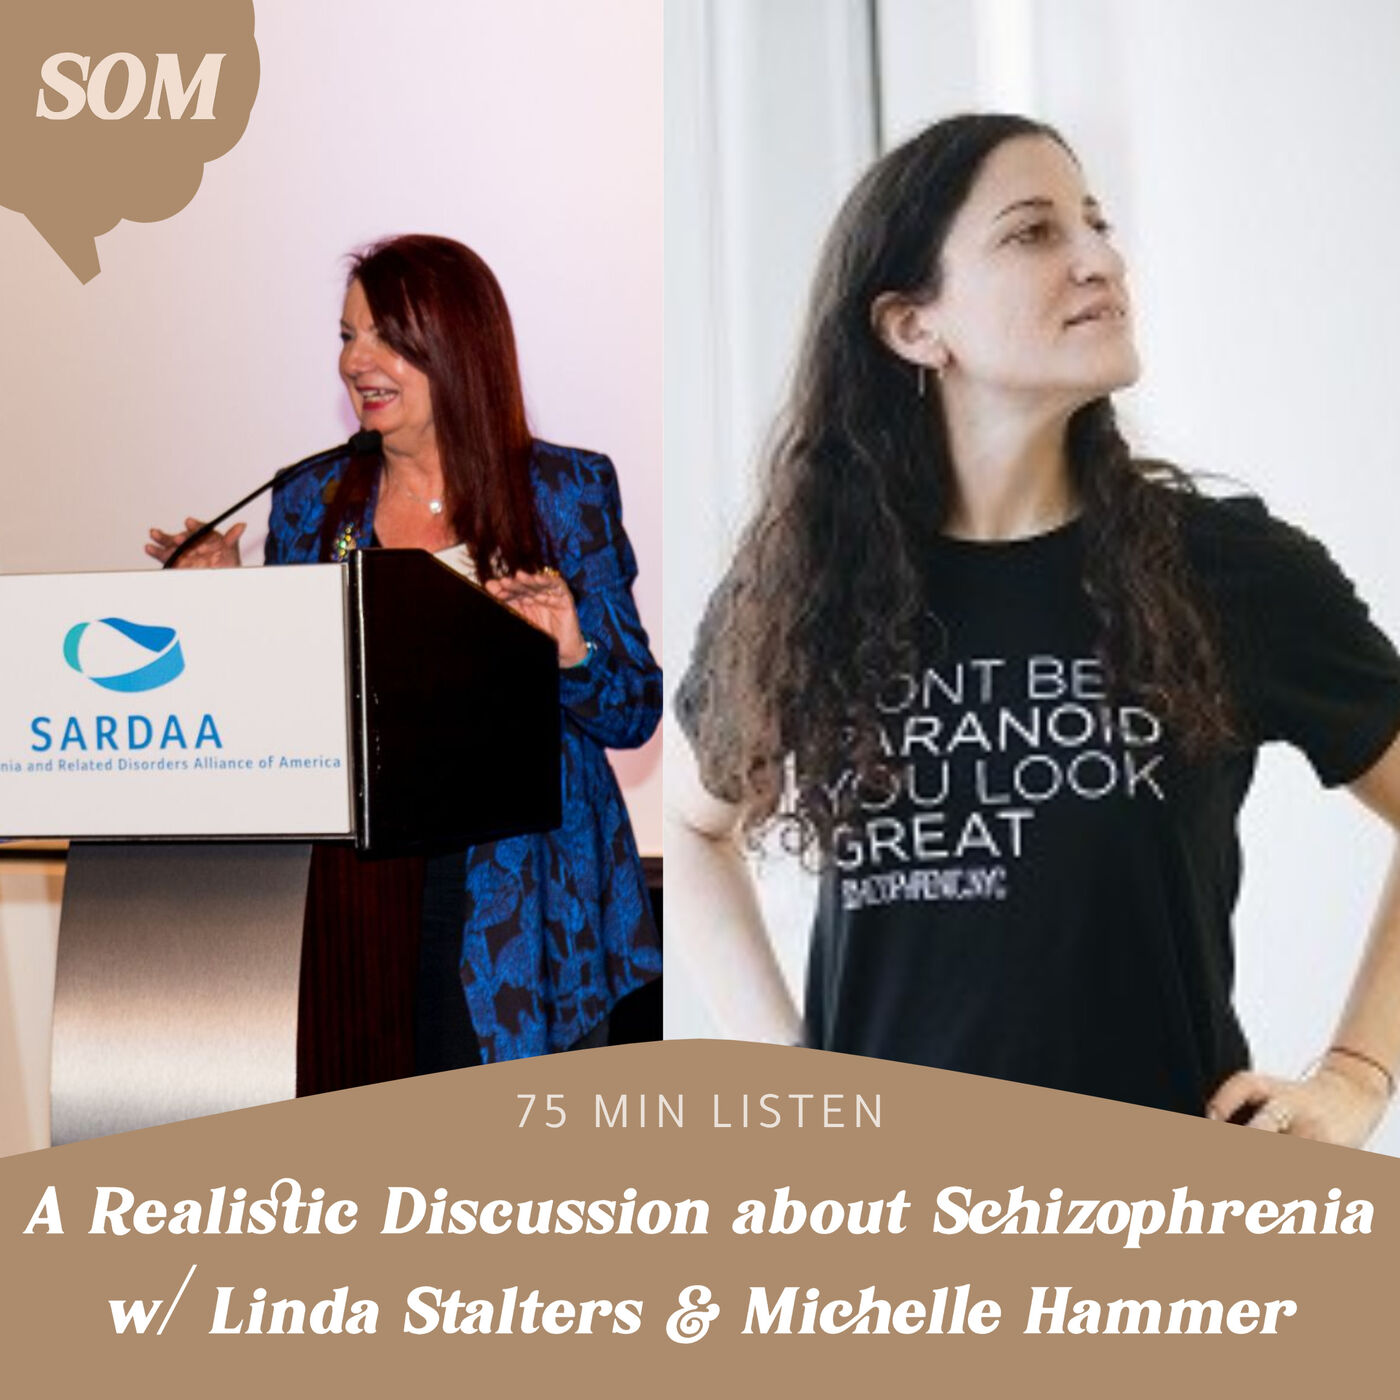 A Realistic Discussion about Schizophrenia w/ Linda Stalters & Michelle Hammer